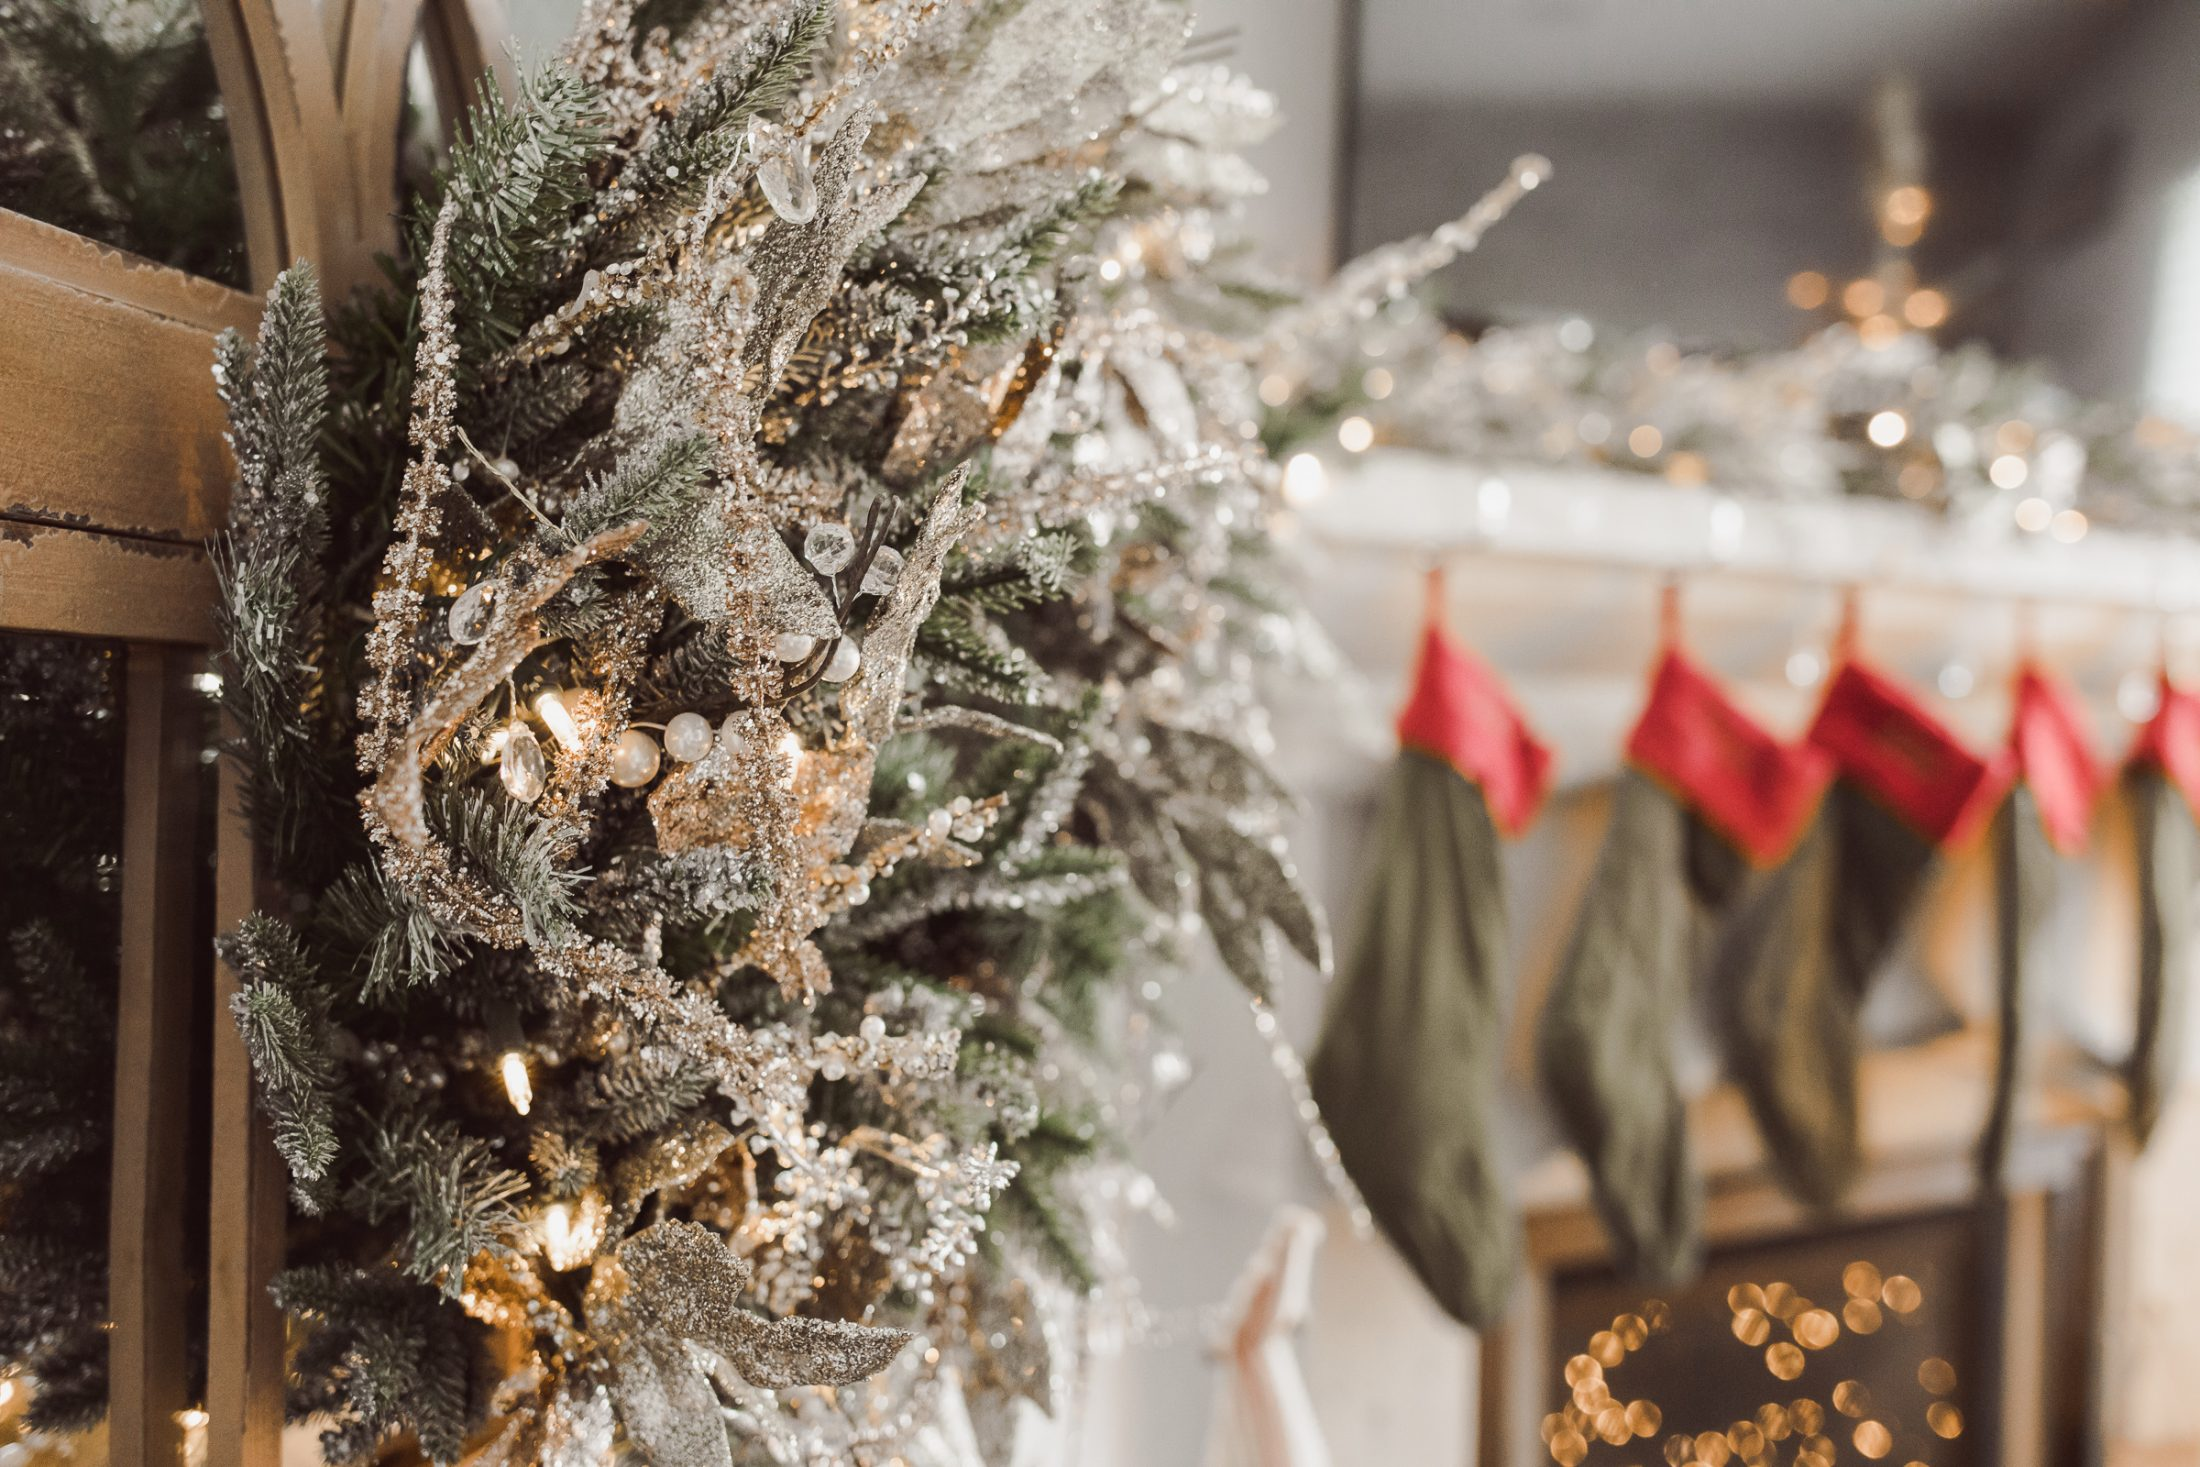 Houston lifestyle blogger Uptown with Elly Brown shares her Balsam Hill x Nicole Miller Christmas Decorations. Read more for Holiday inspiration!